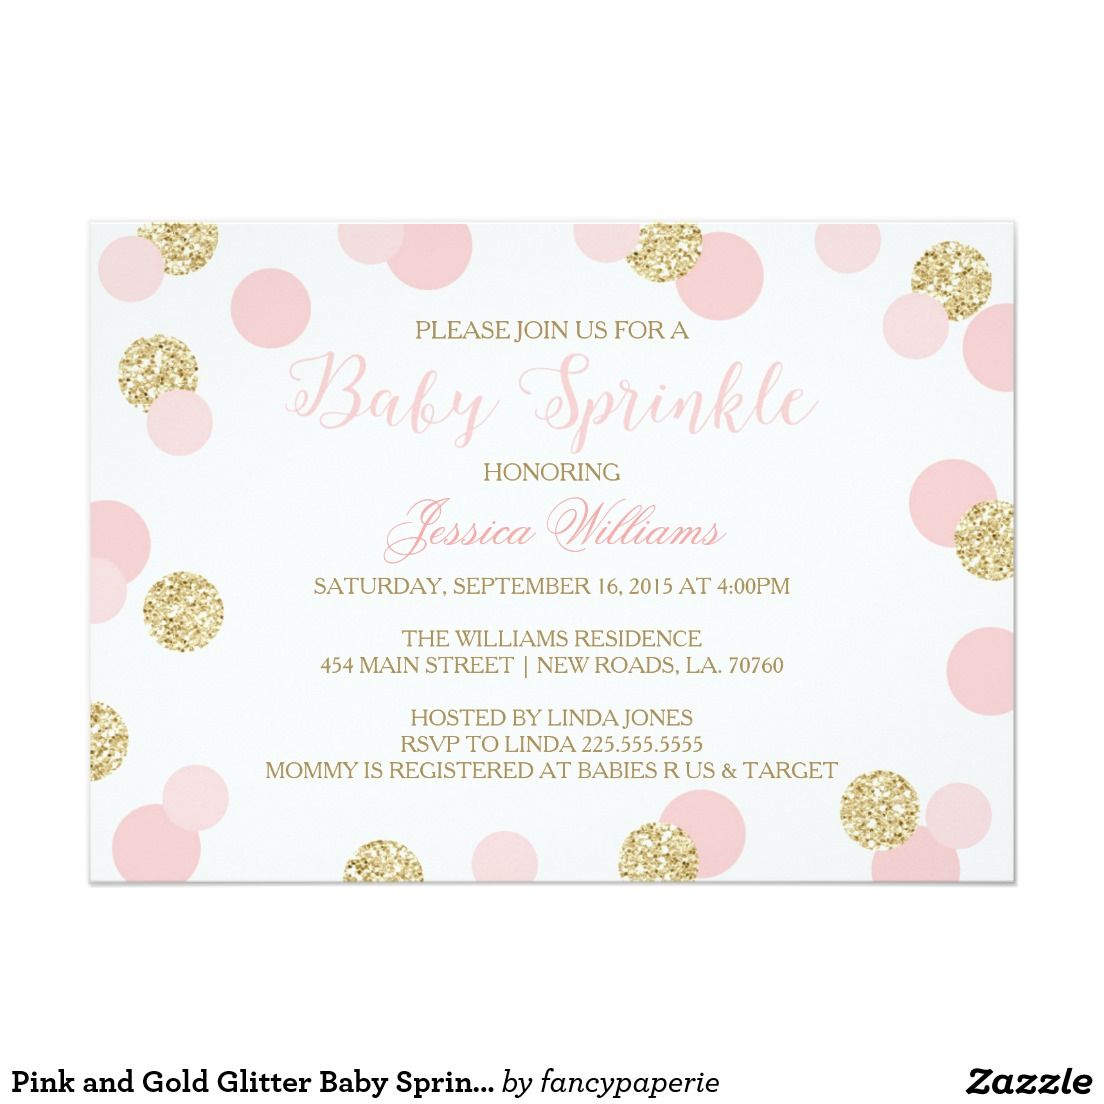 Pink and Gold Glitter Baby Sprinkle Invitations 5\